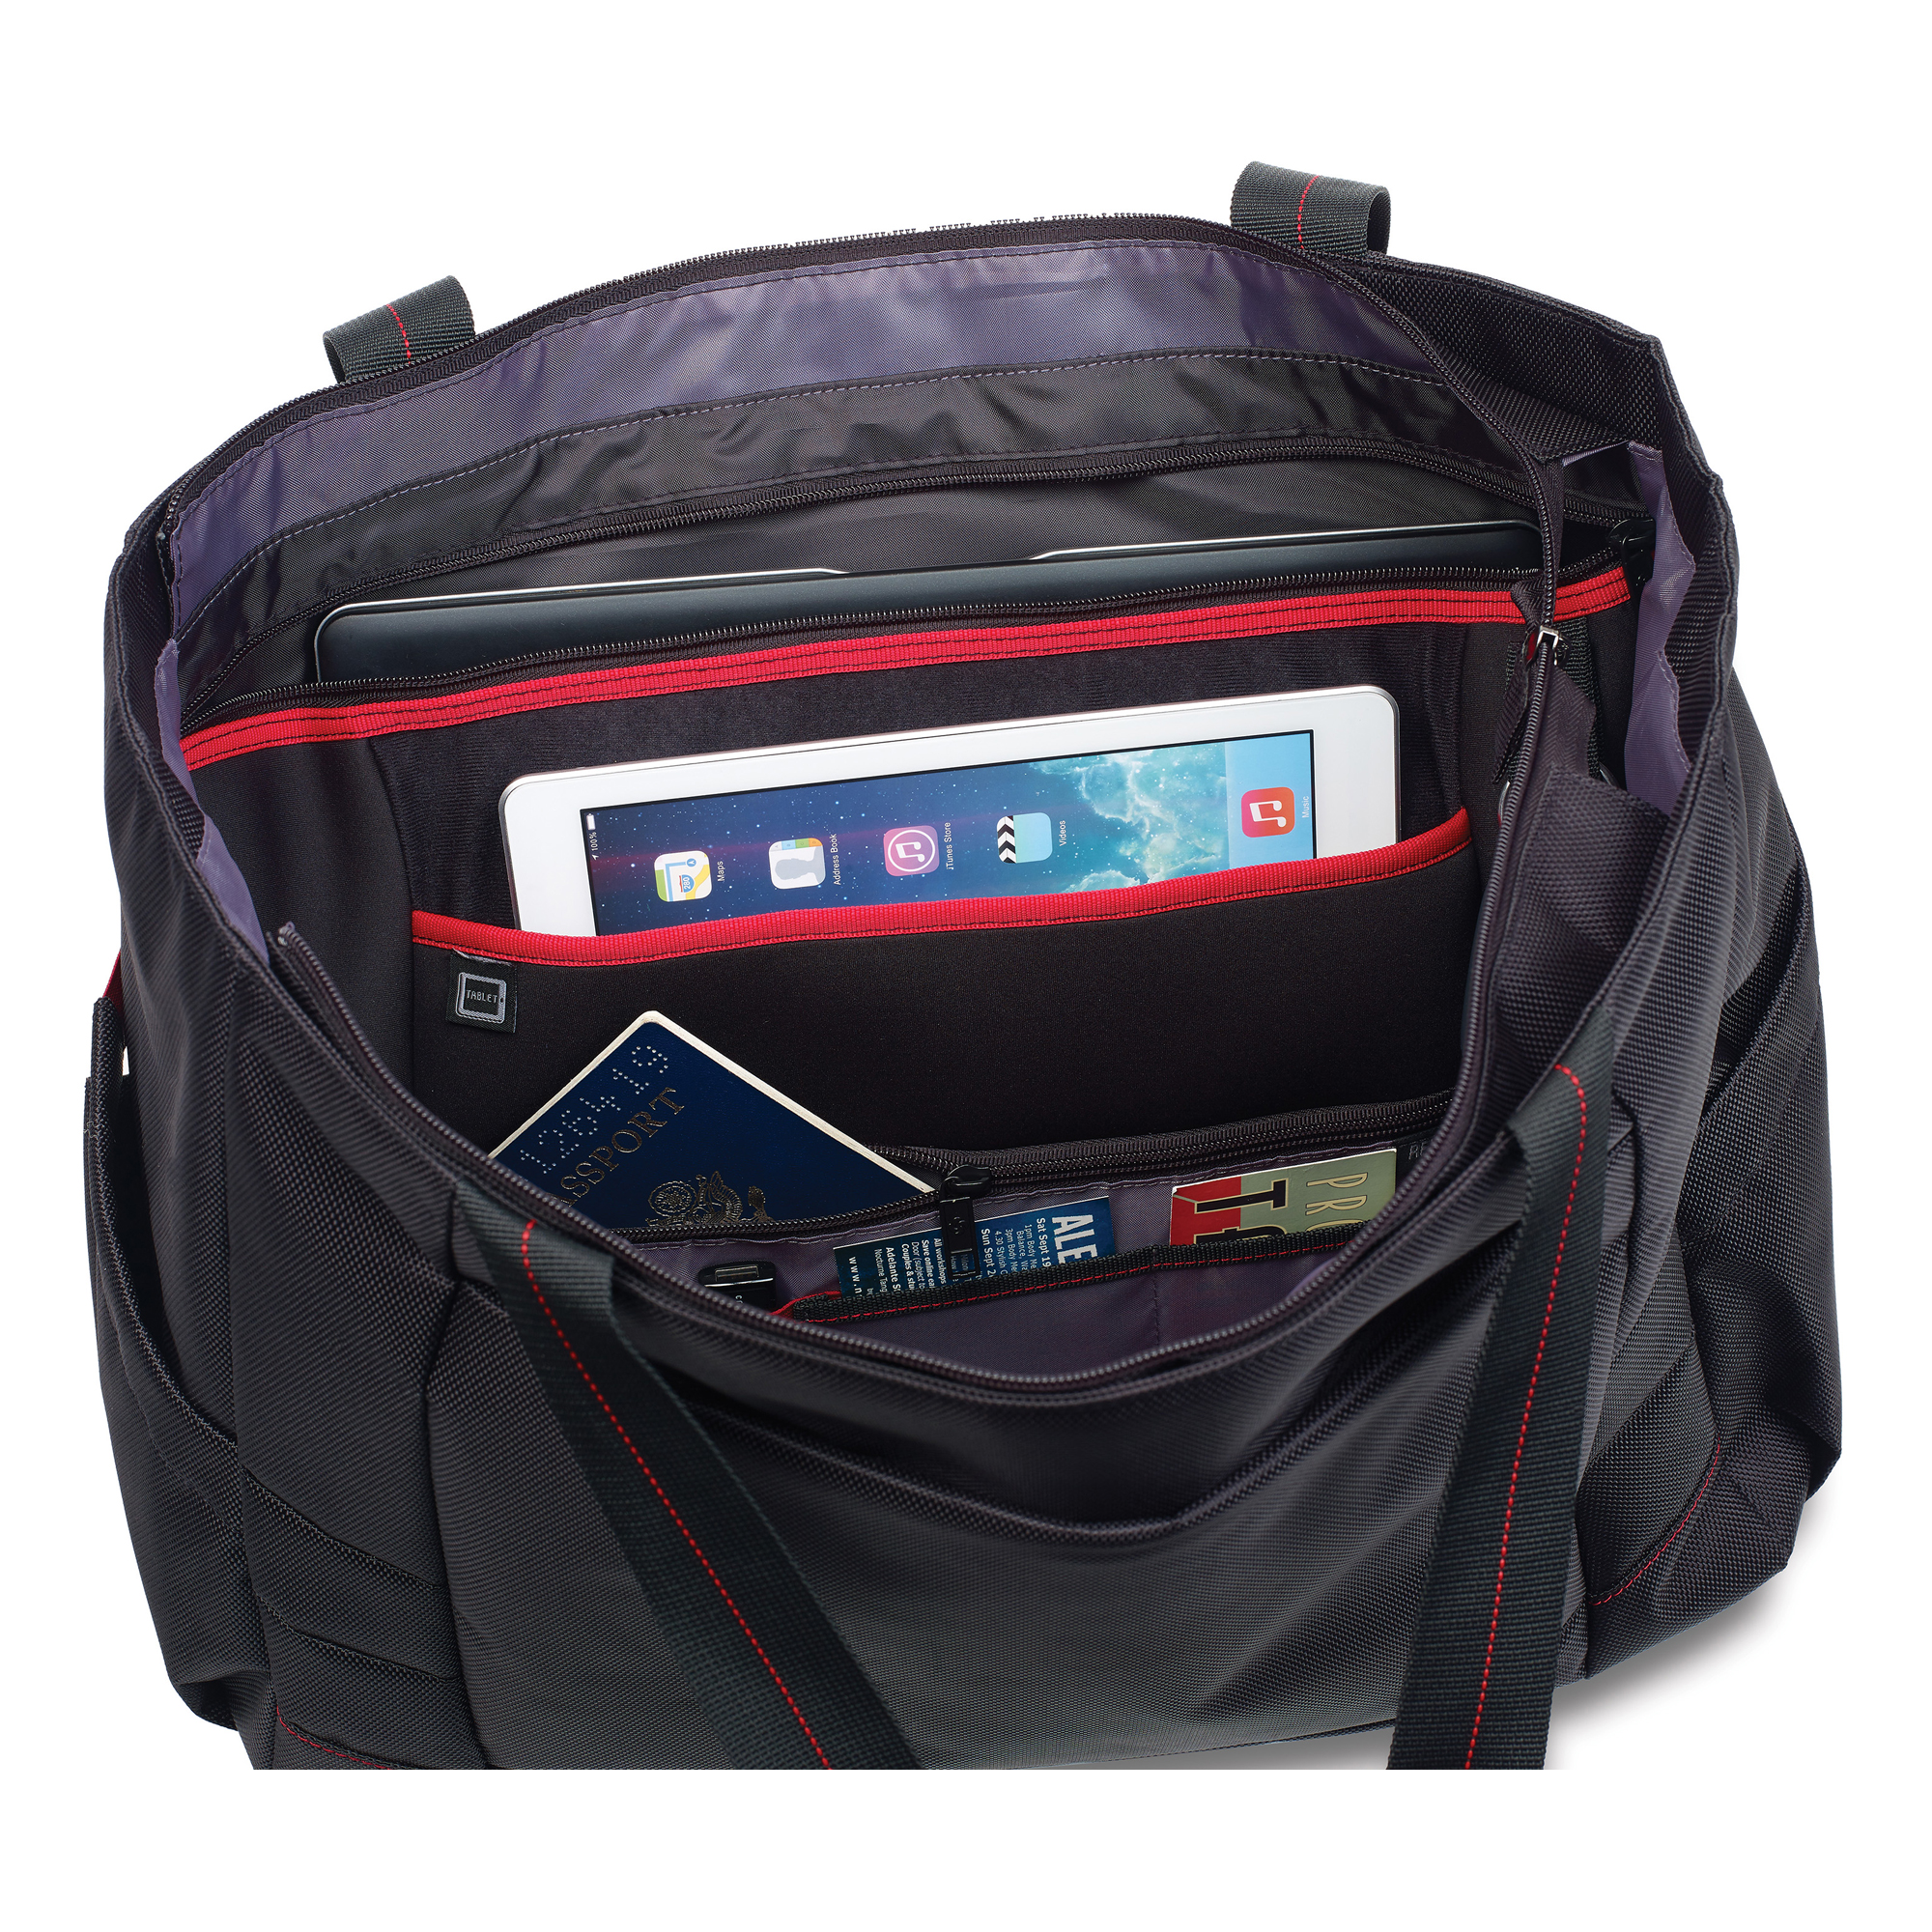 Interior organization is well suited for all your tech items.